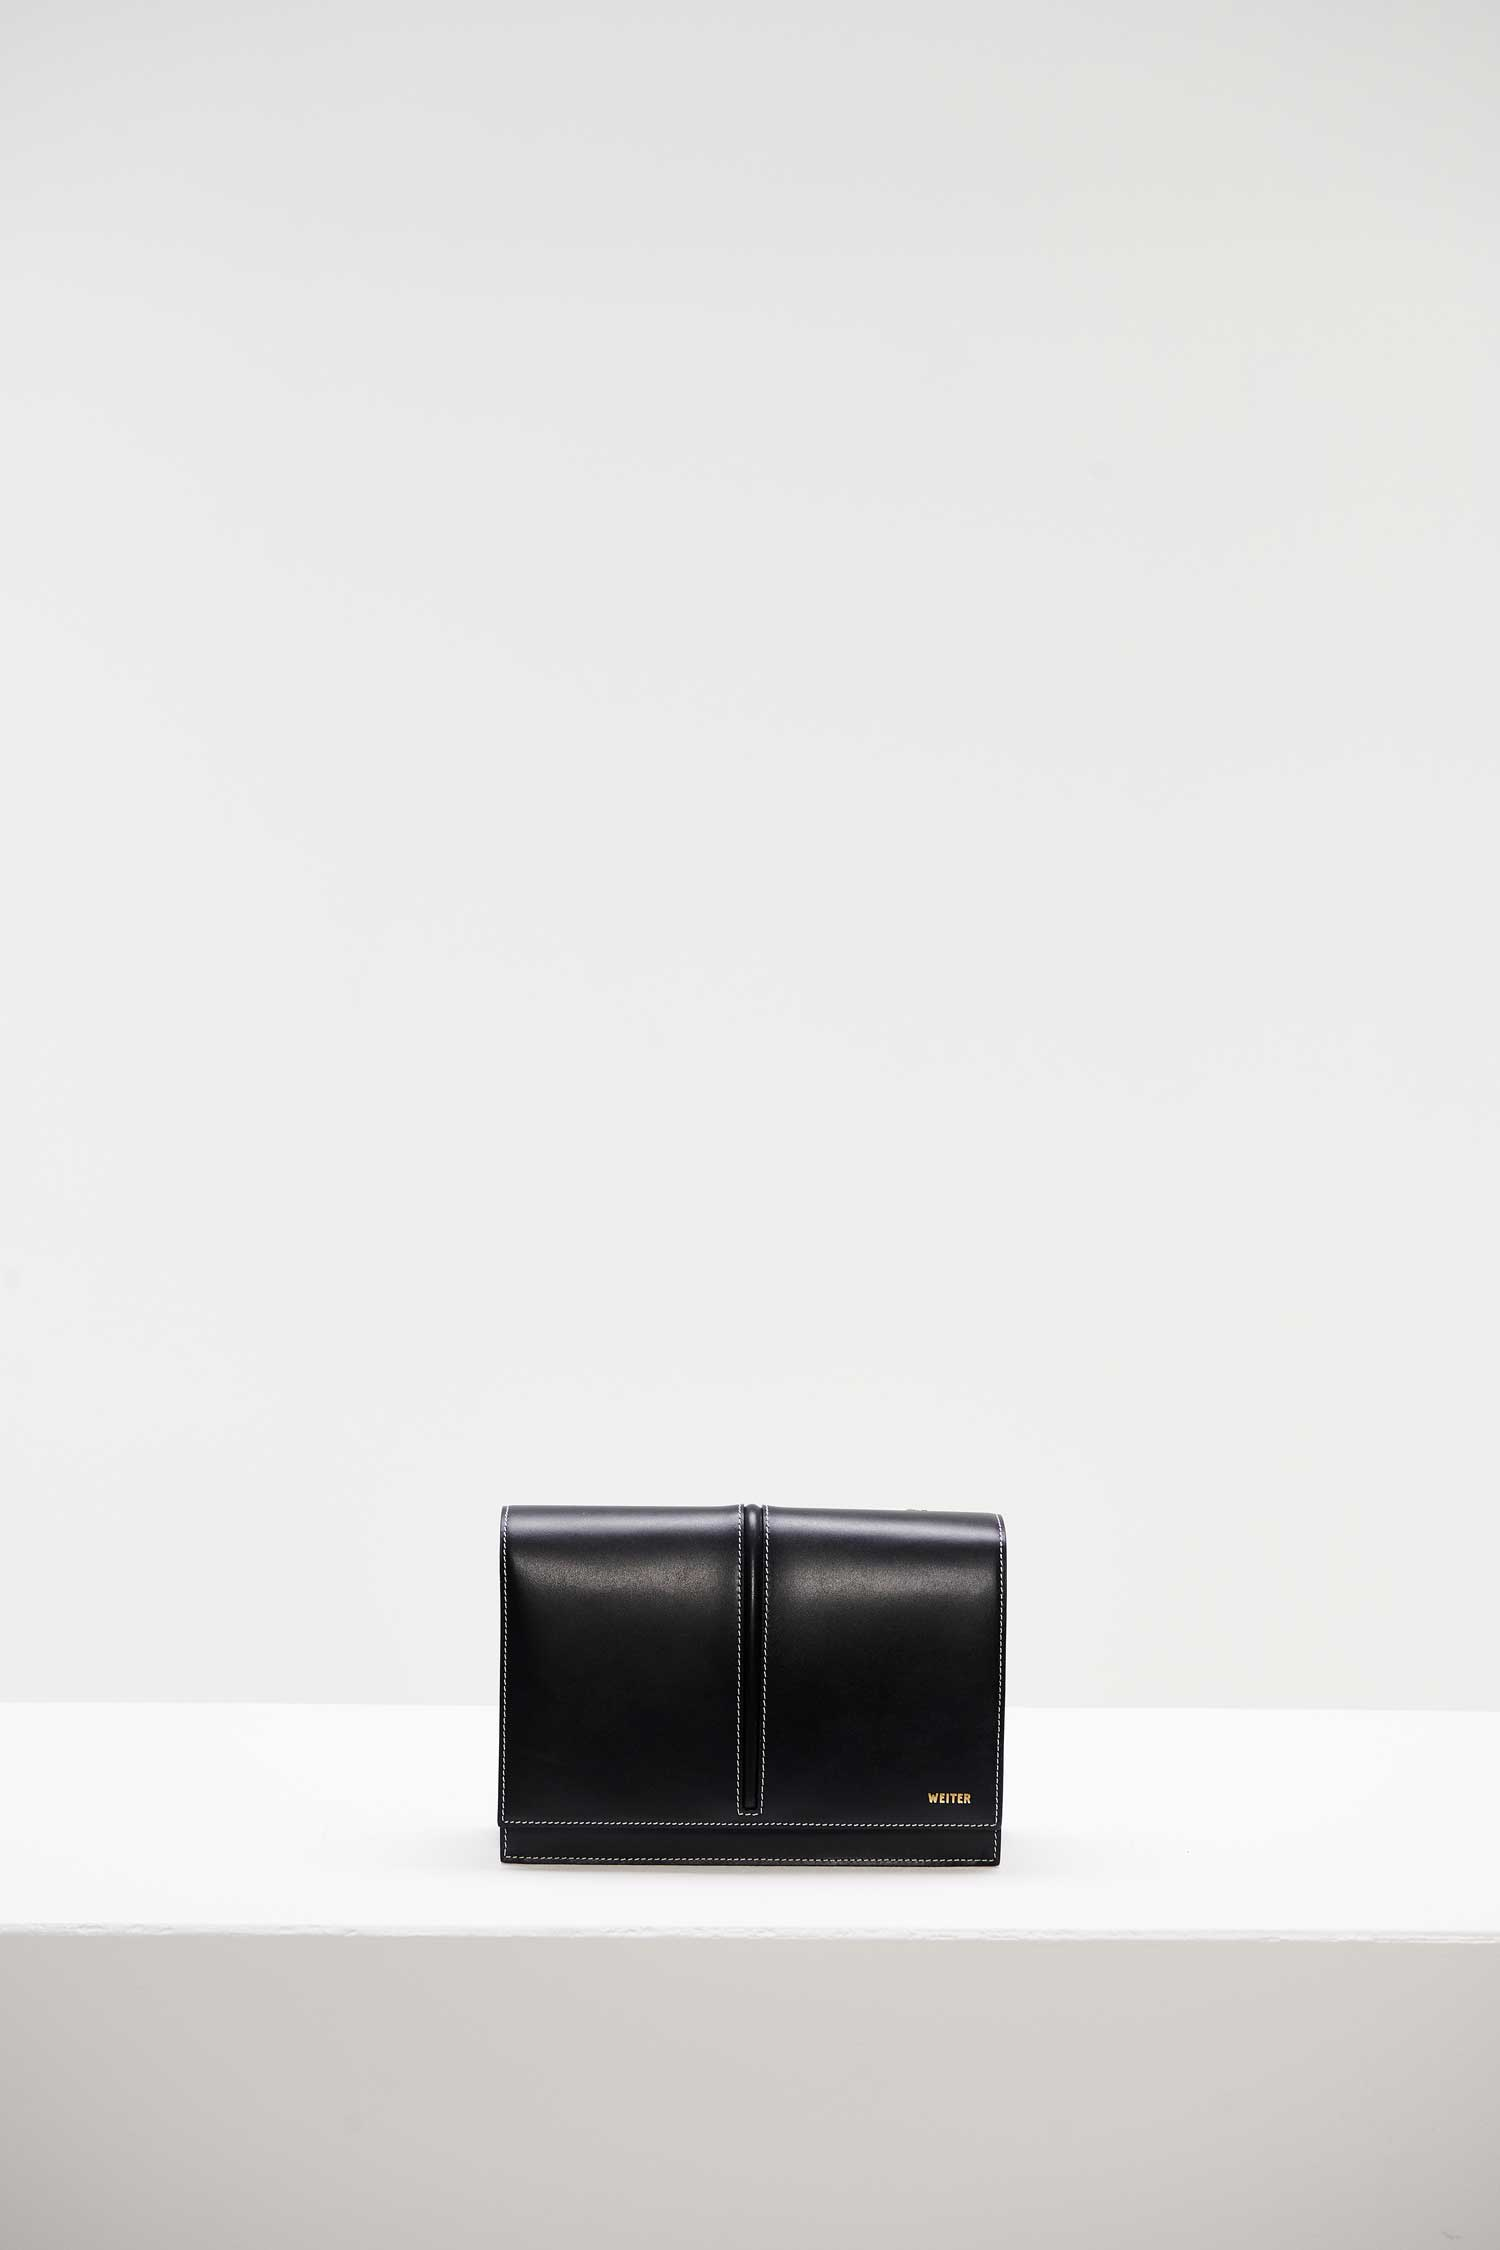 Weiter Bags – Daily Black – 2020